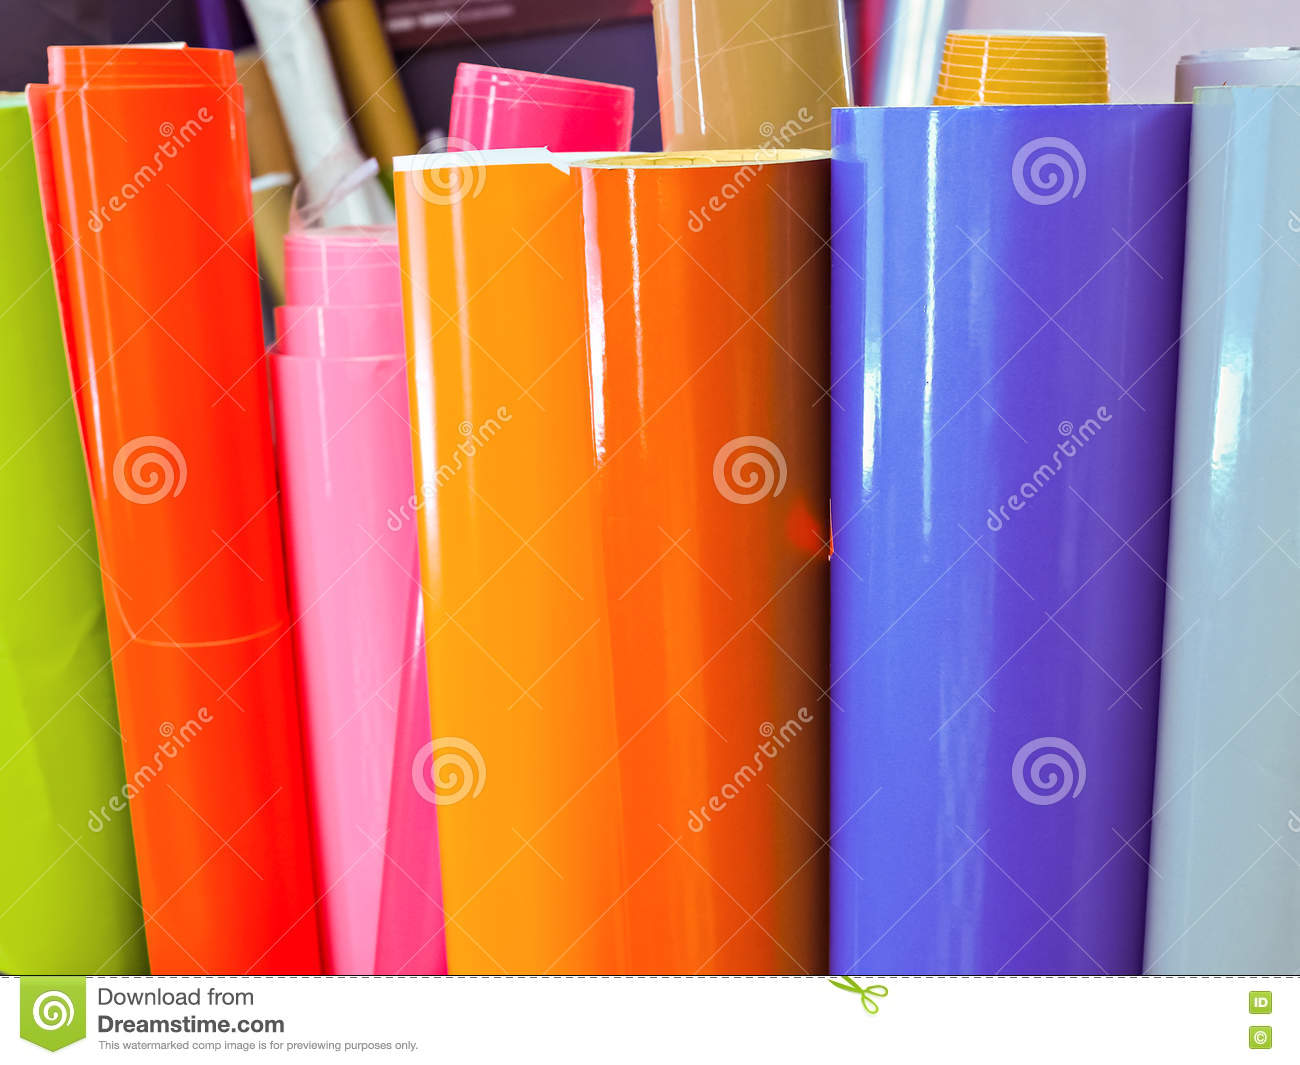 Vinyl Sticker Paper Roll stock photo  Image of texture - 70955758